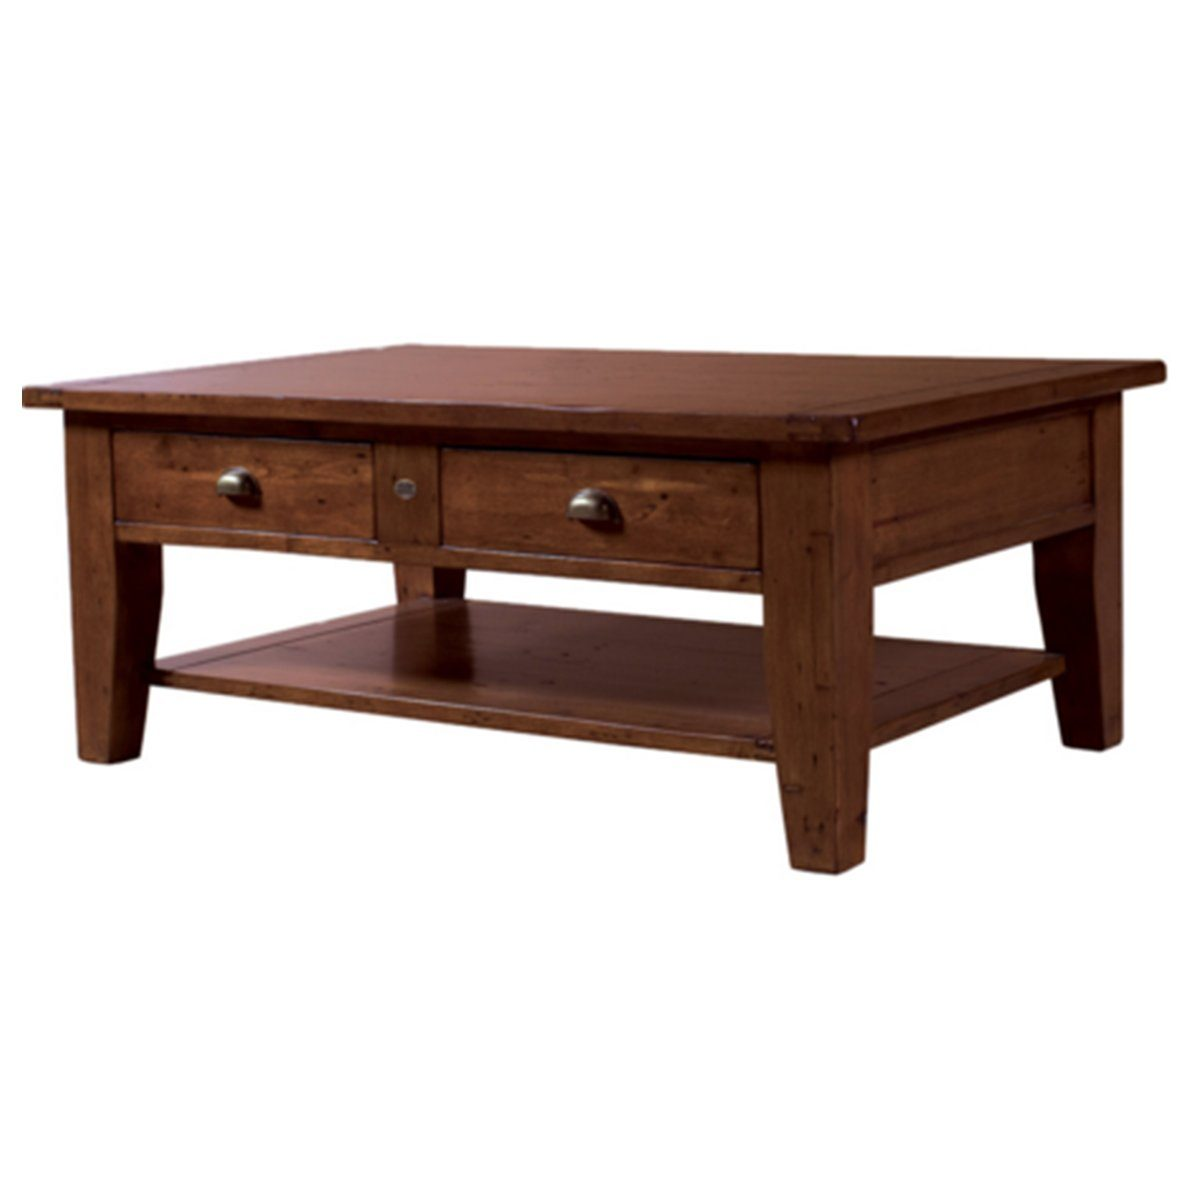 Irish Coast Small Coffee Table - African Dusk - Showhome Furniture